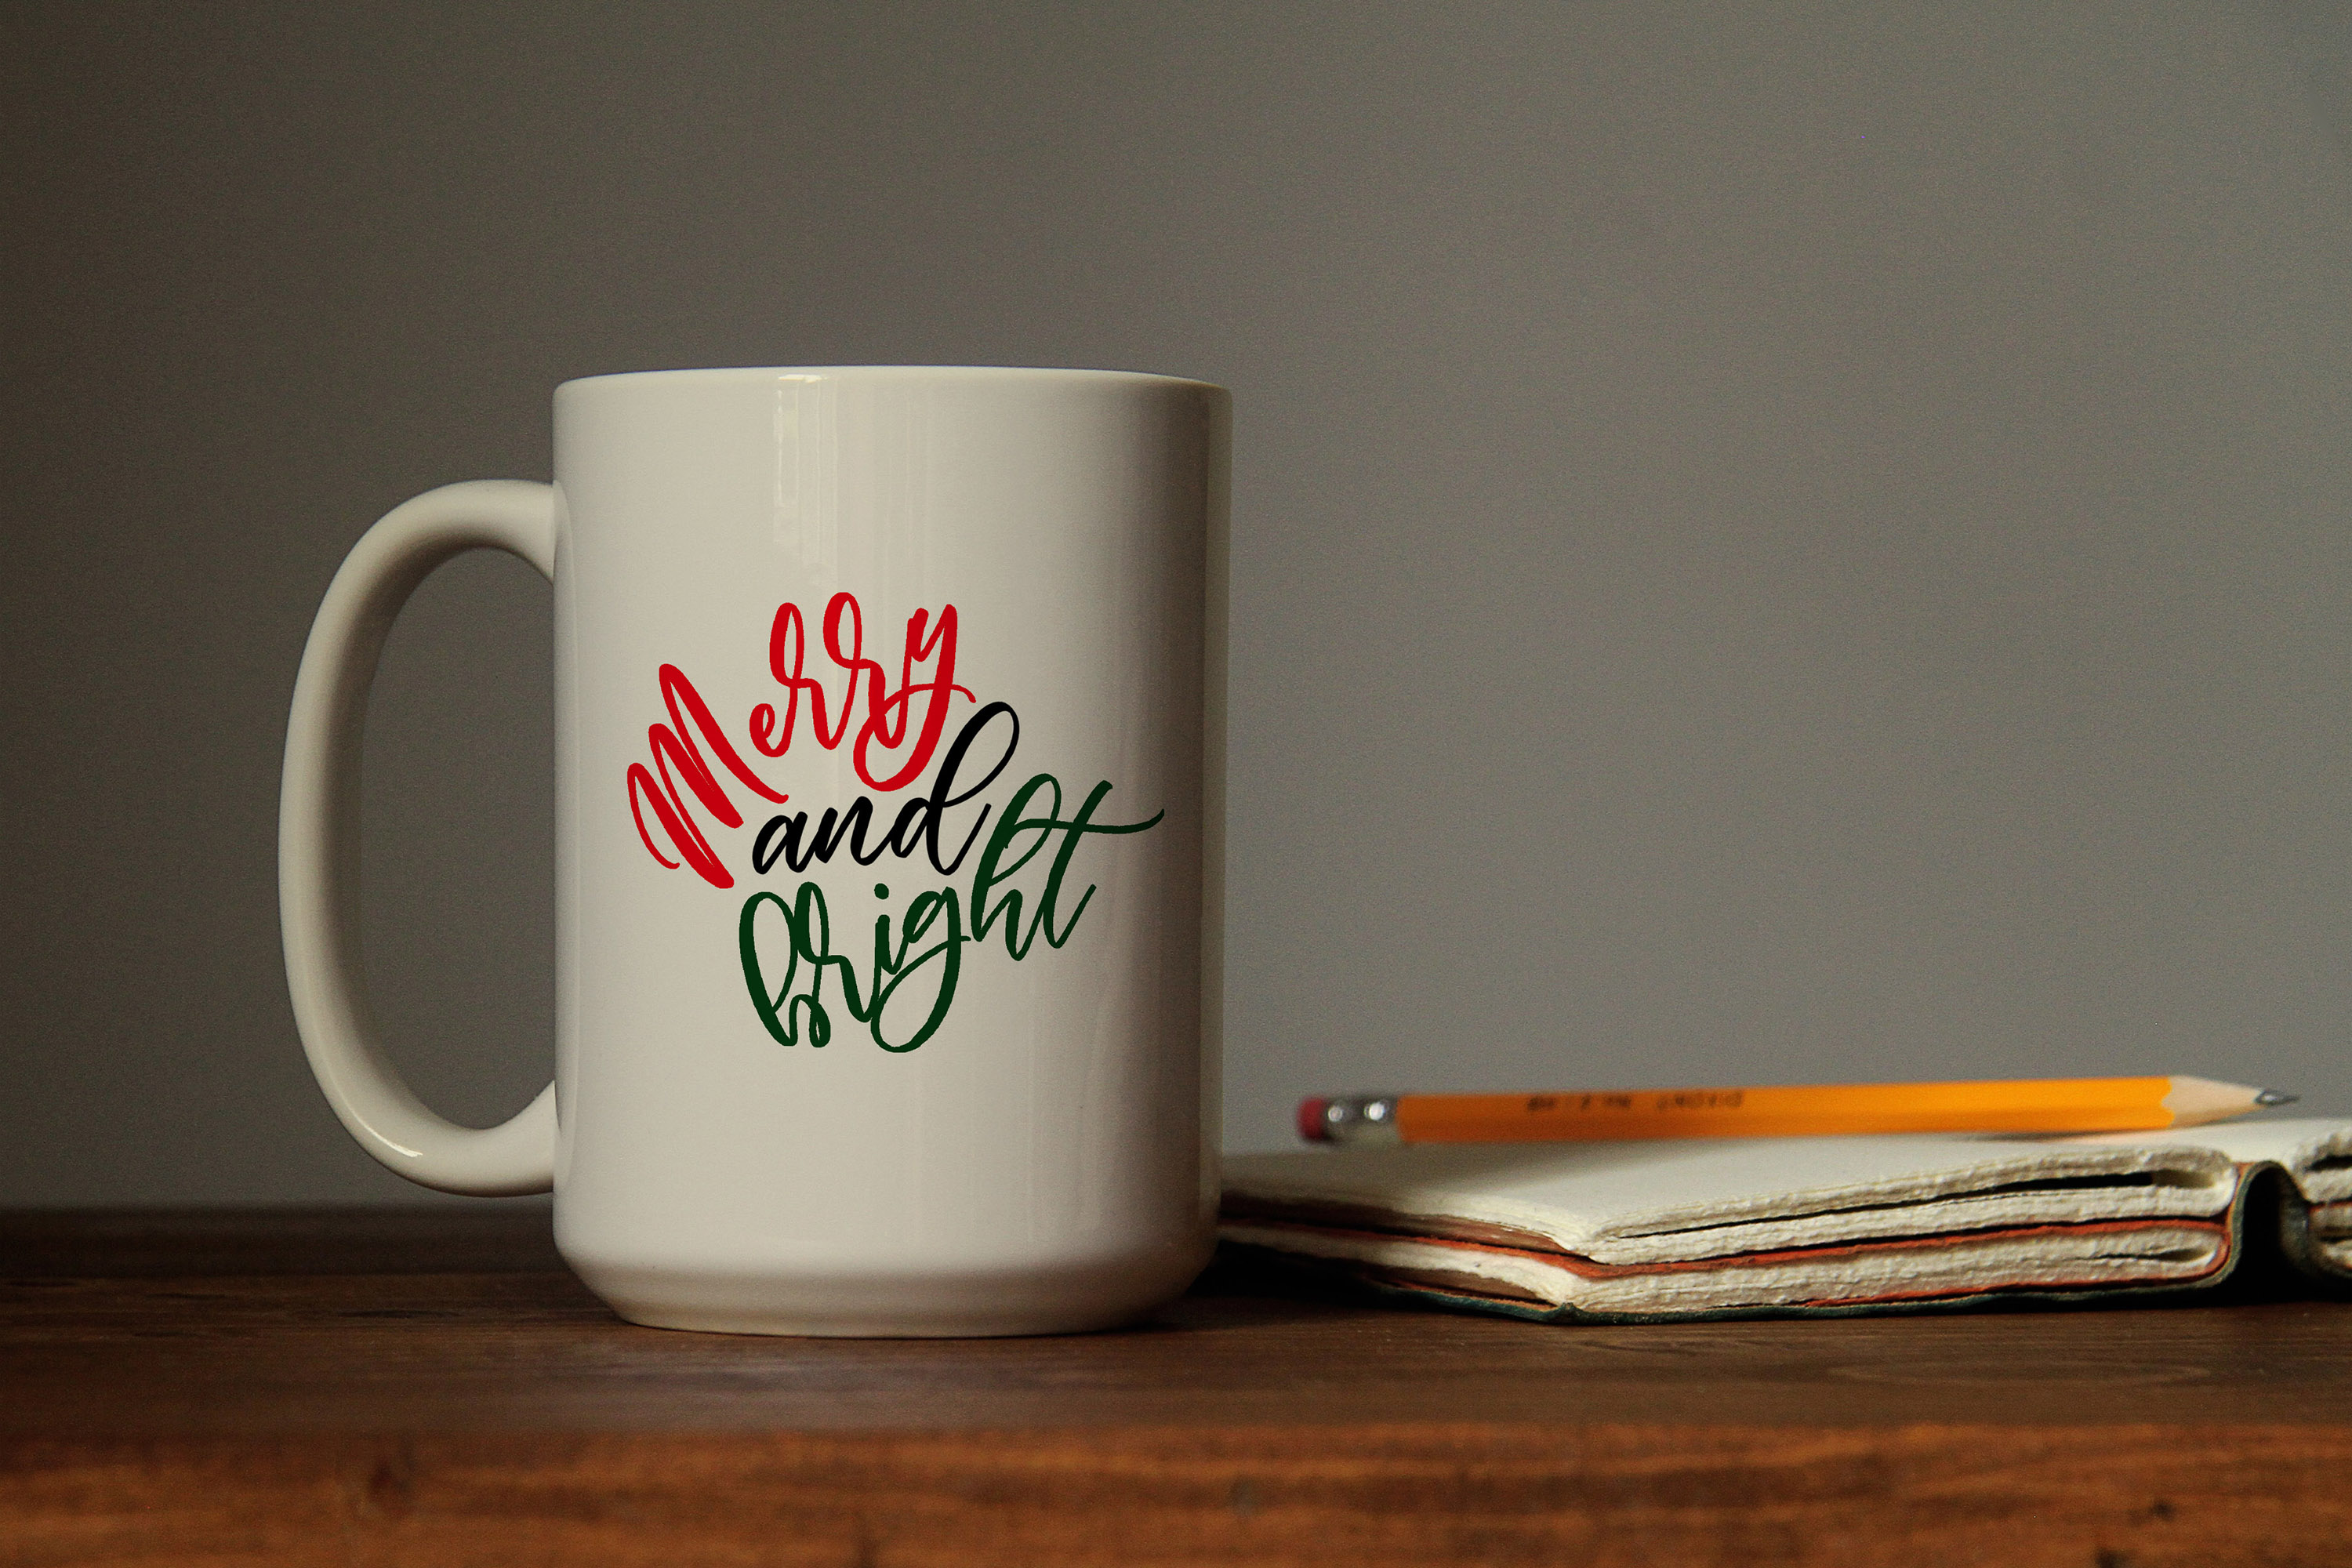 Merry and bright svg digital cut file Holiday Christmas example image 5